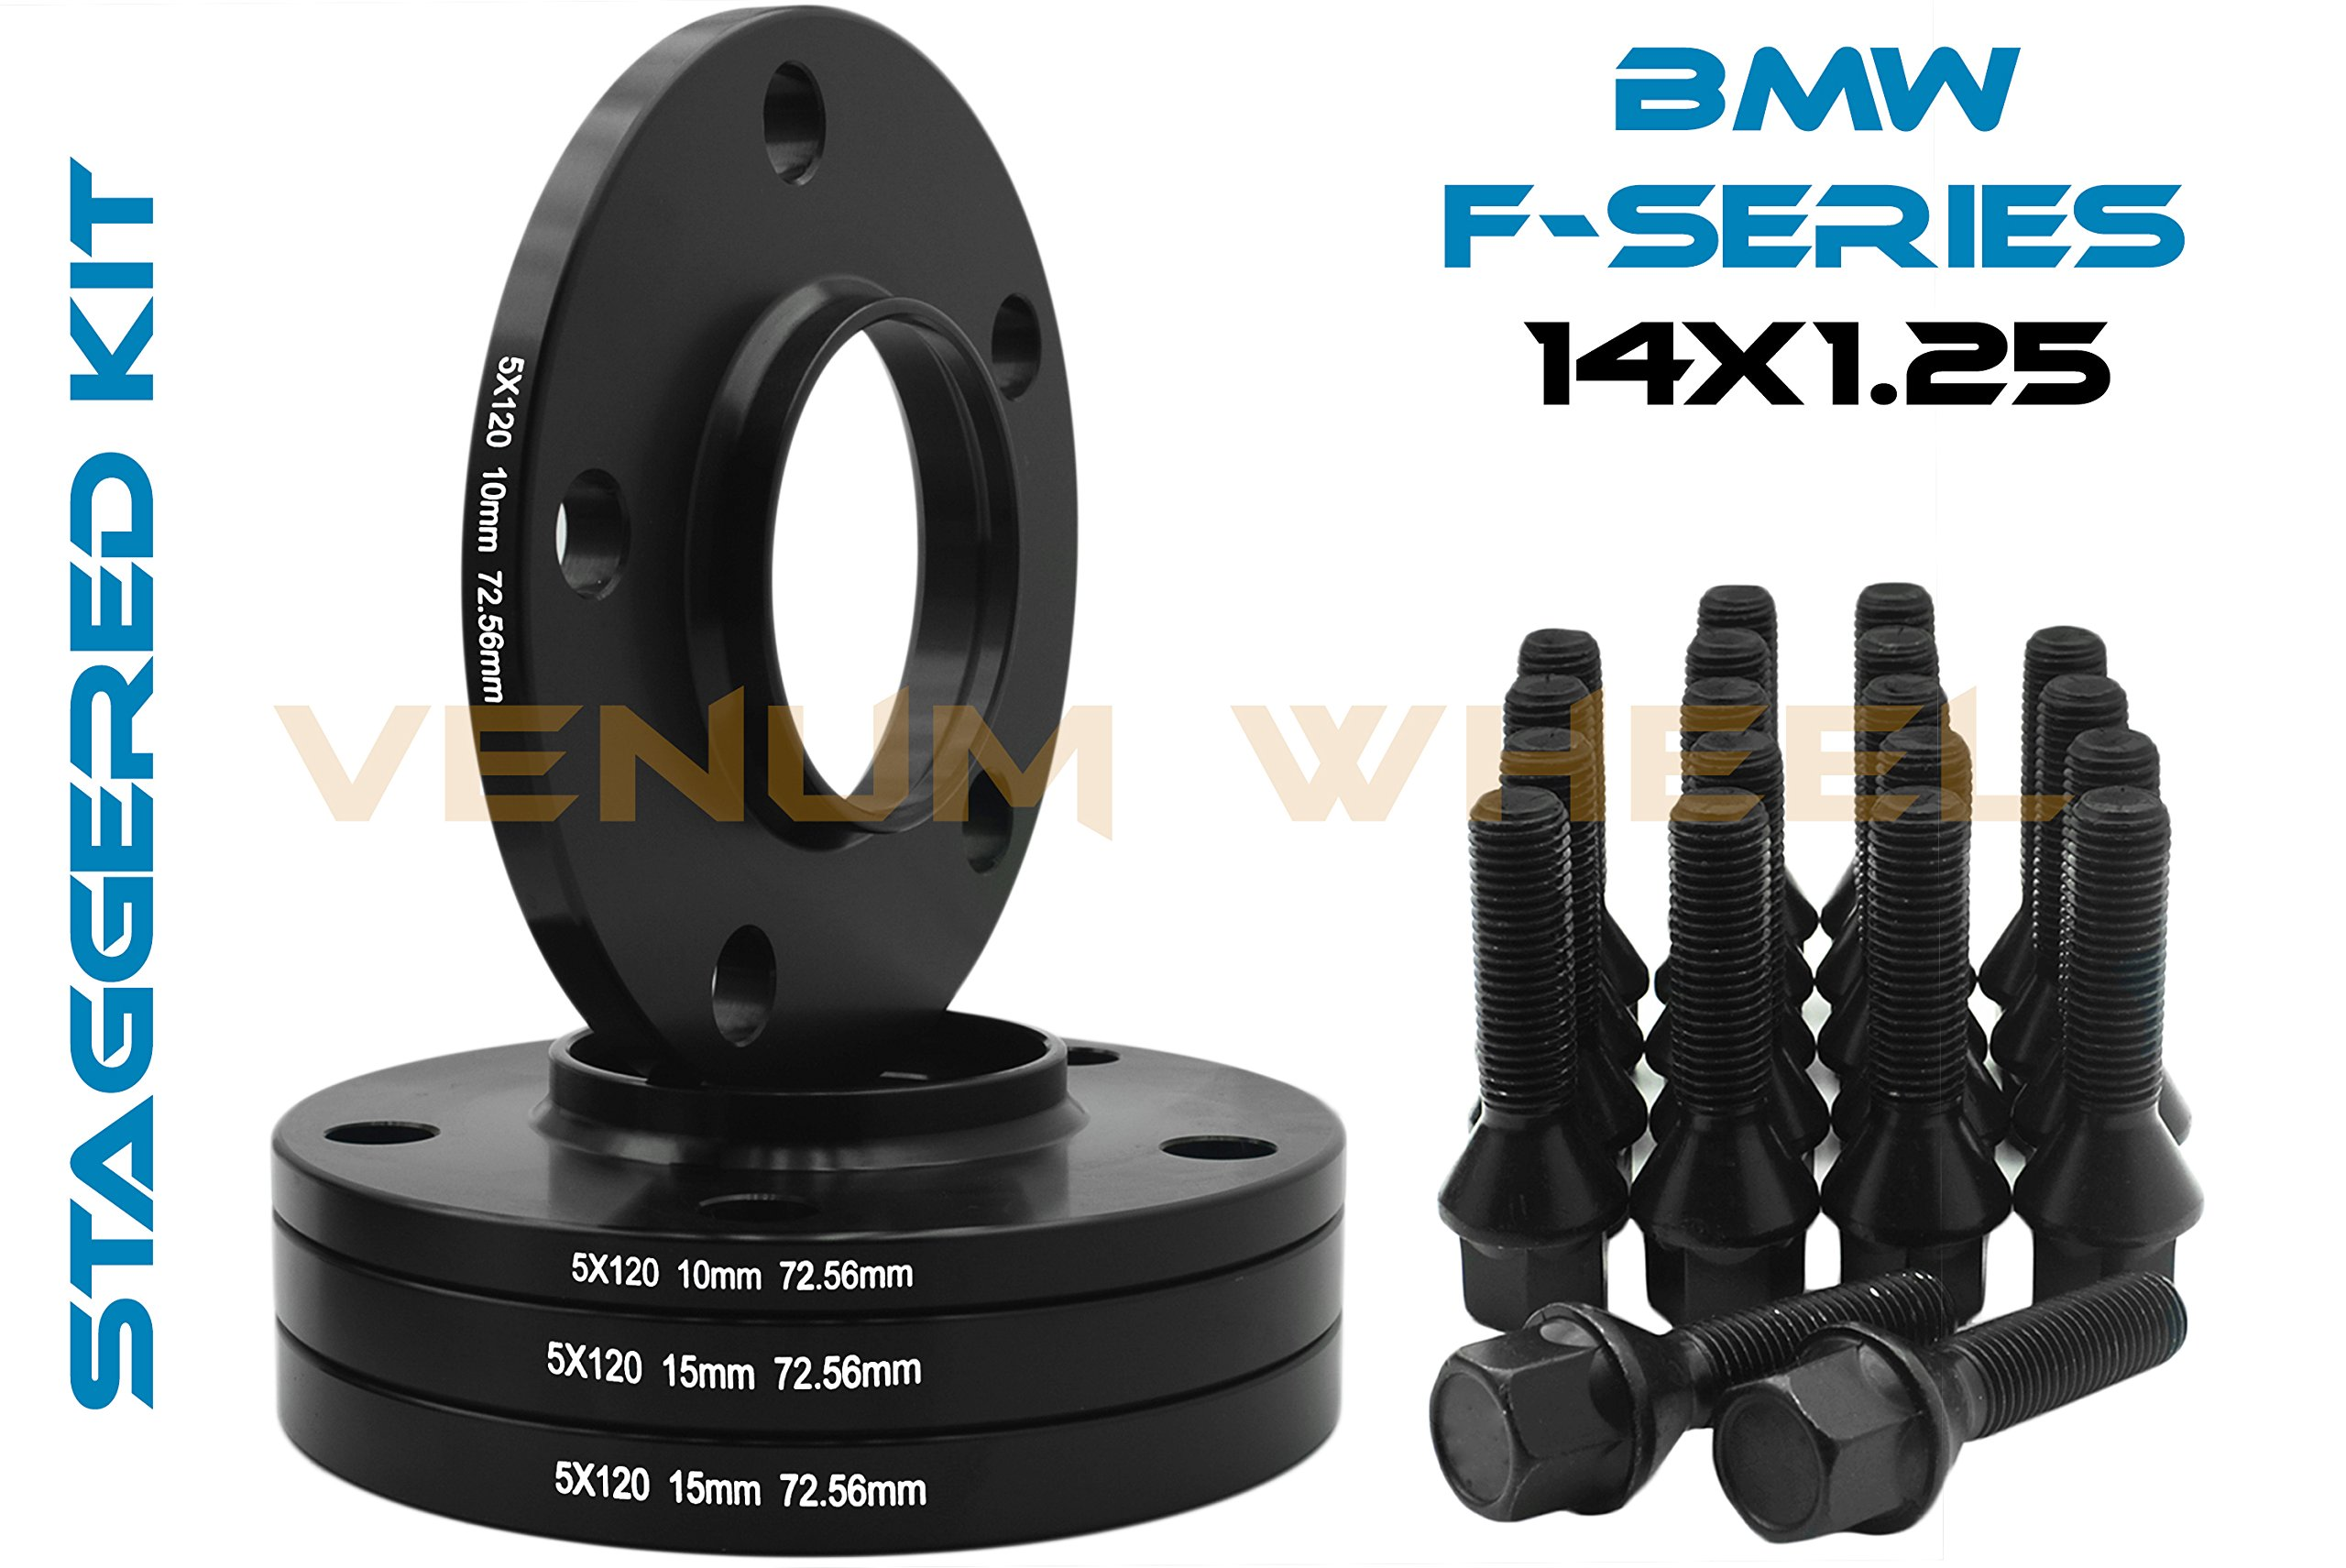 Complete Set Of 10mm & 15mm Staggered Bmw Black Hub Centric Wheel Spacers 5x120 - 72.56 H.B - F30 F31 320 328 335 F80 M3 F32 F82 M4 435 F22 F23 228 235 F10 528 535 M5 F11